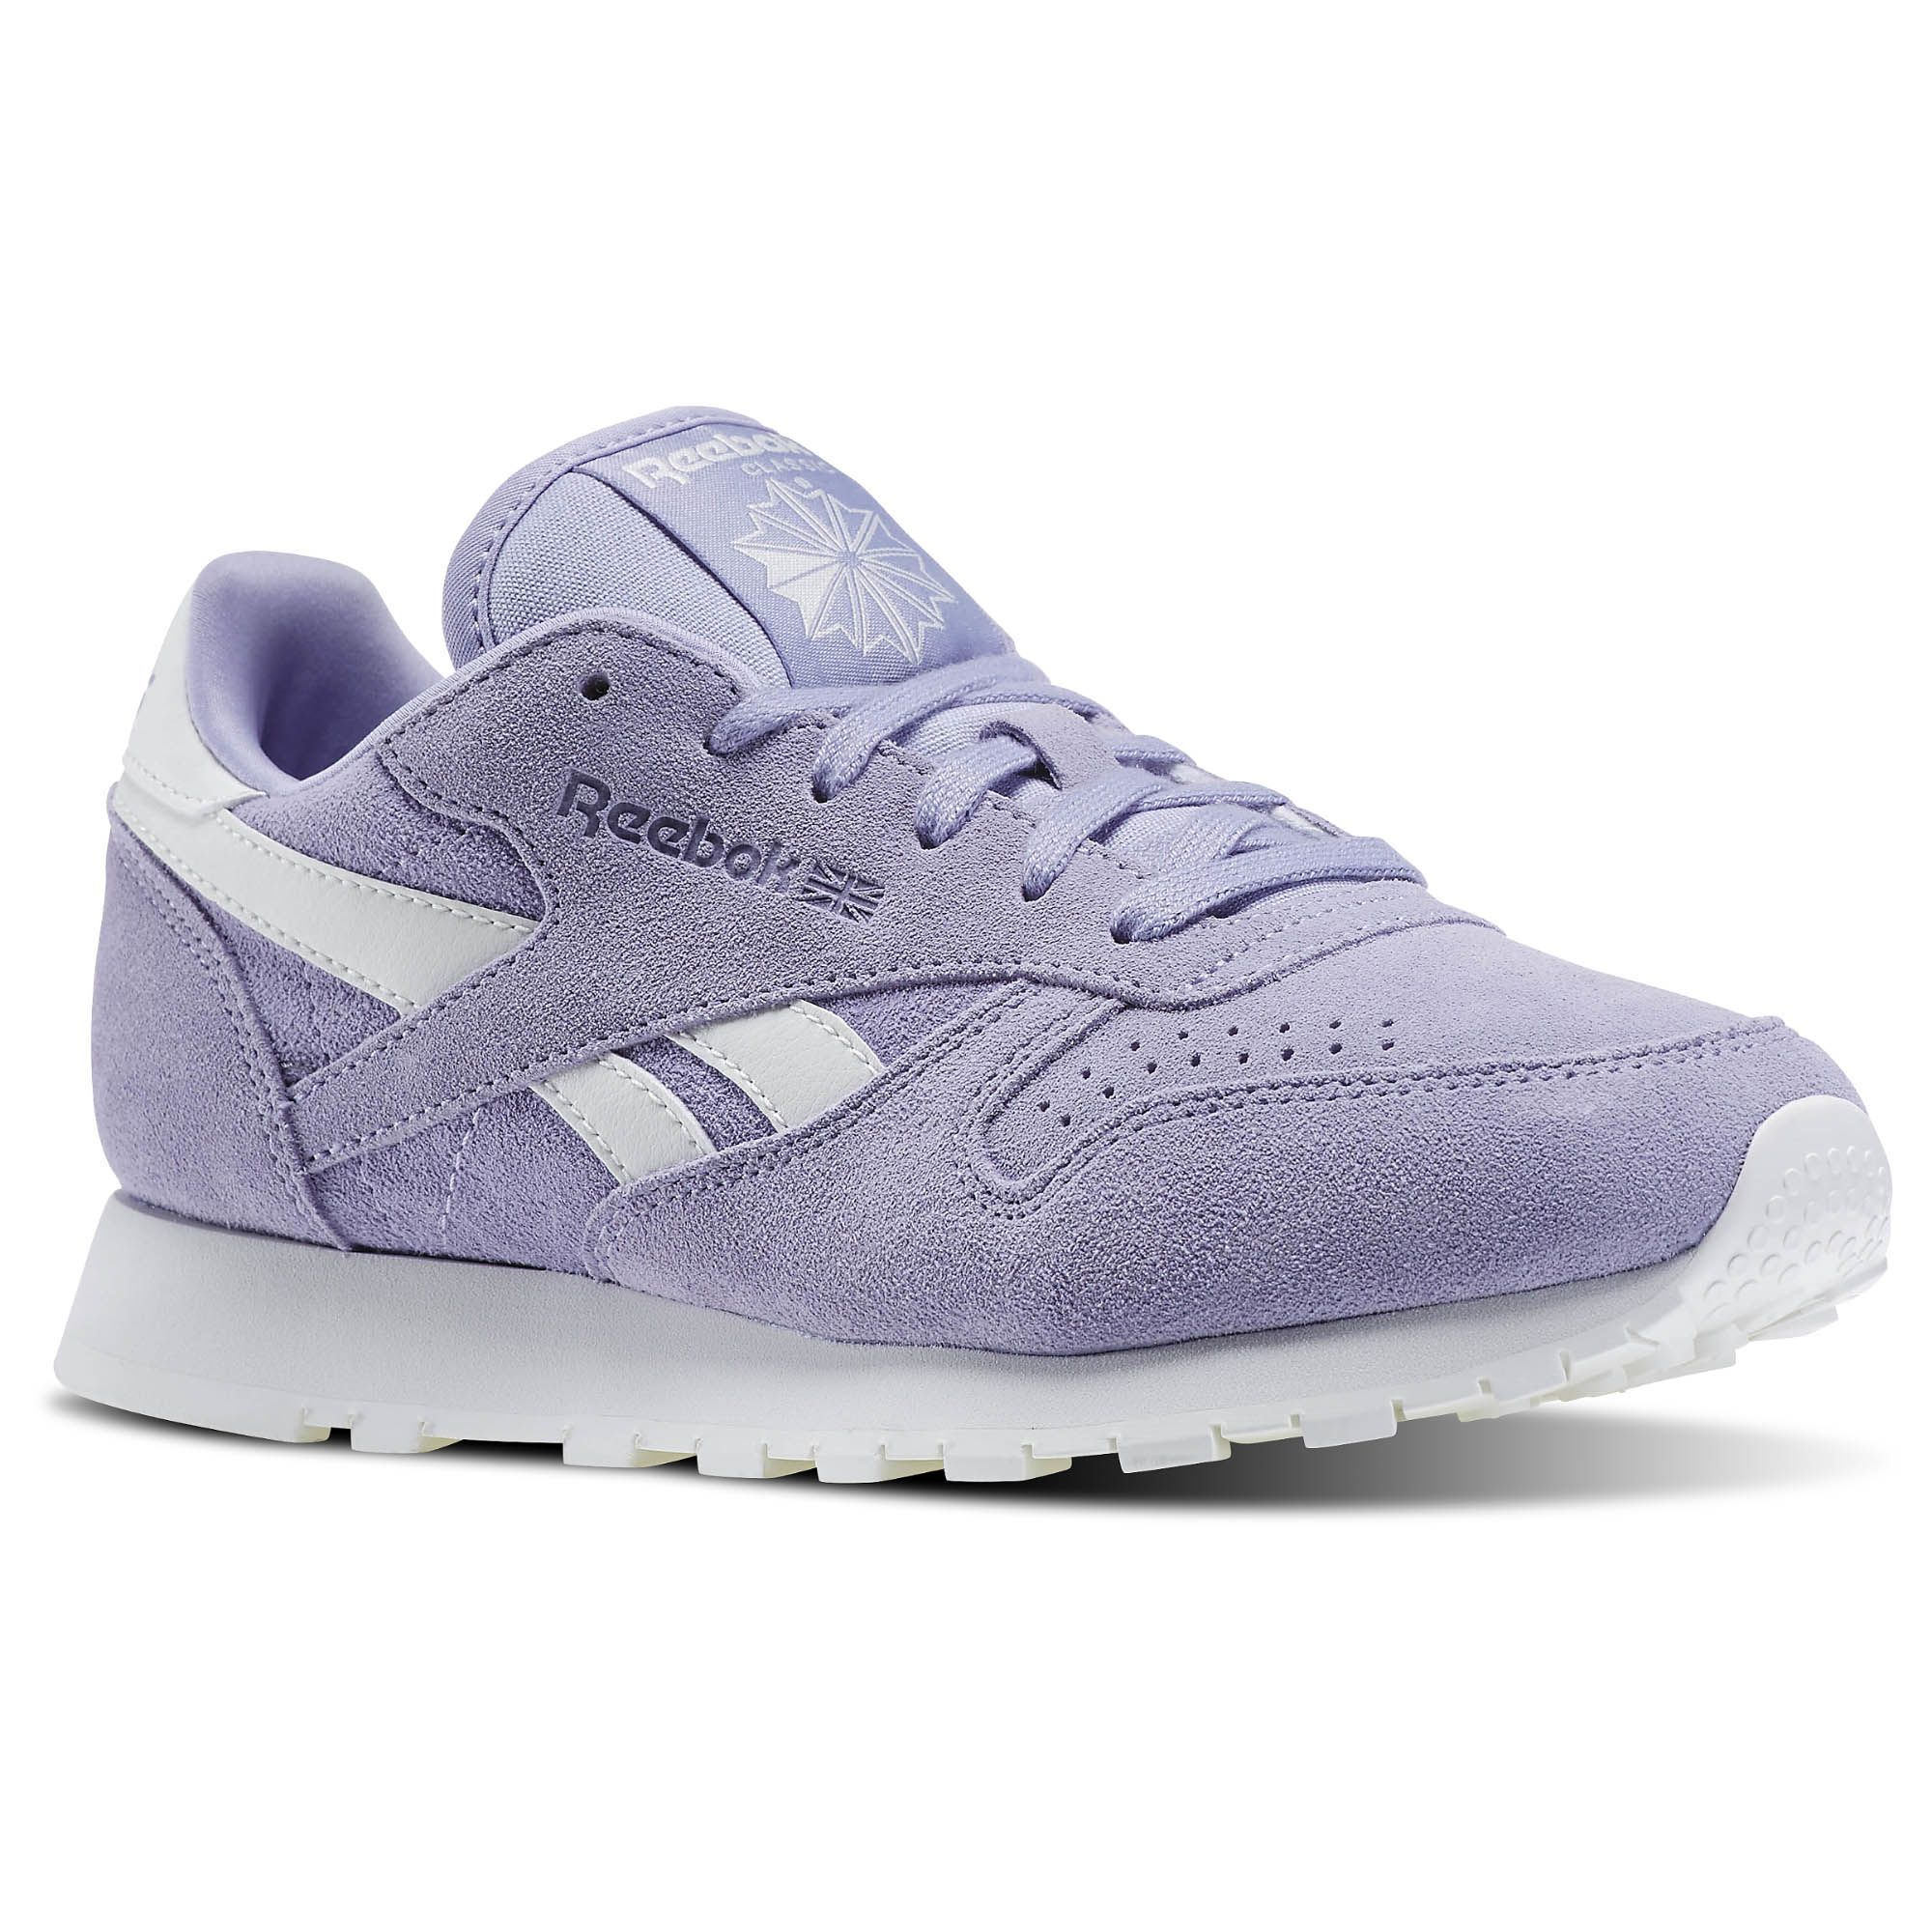 b5664fcfb47 Reebok - Classic Leather Suede Core